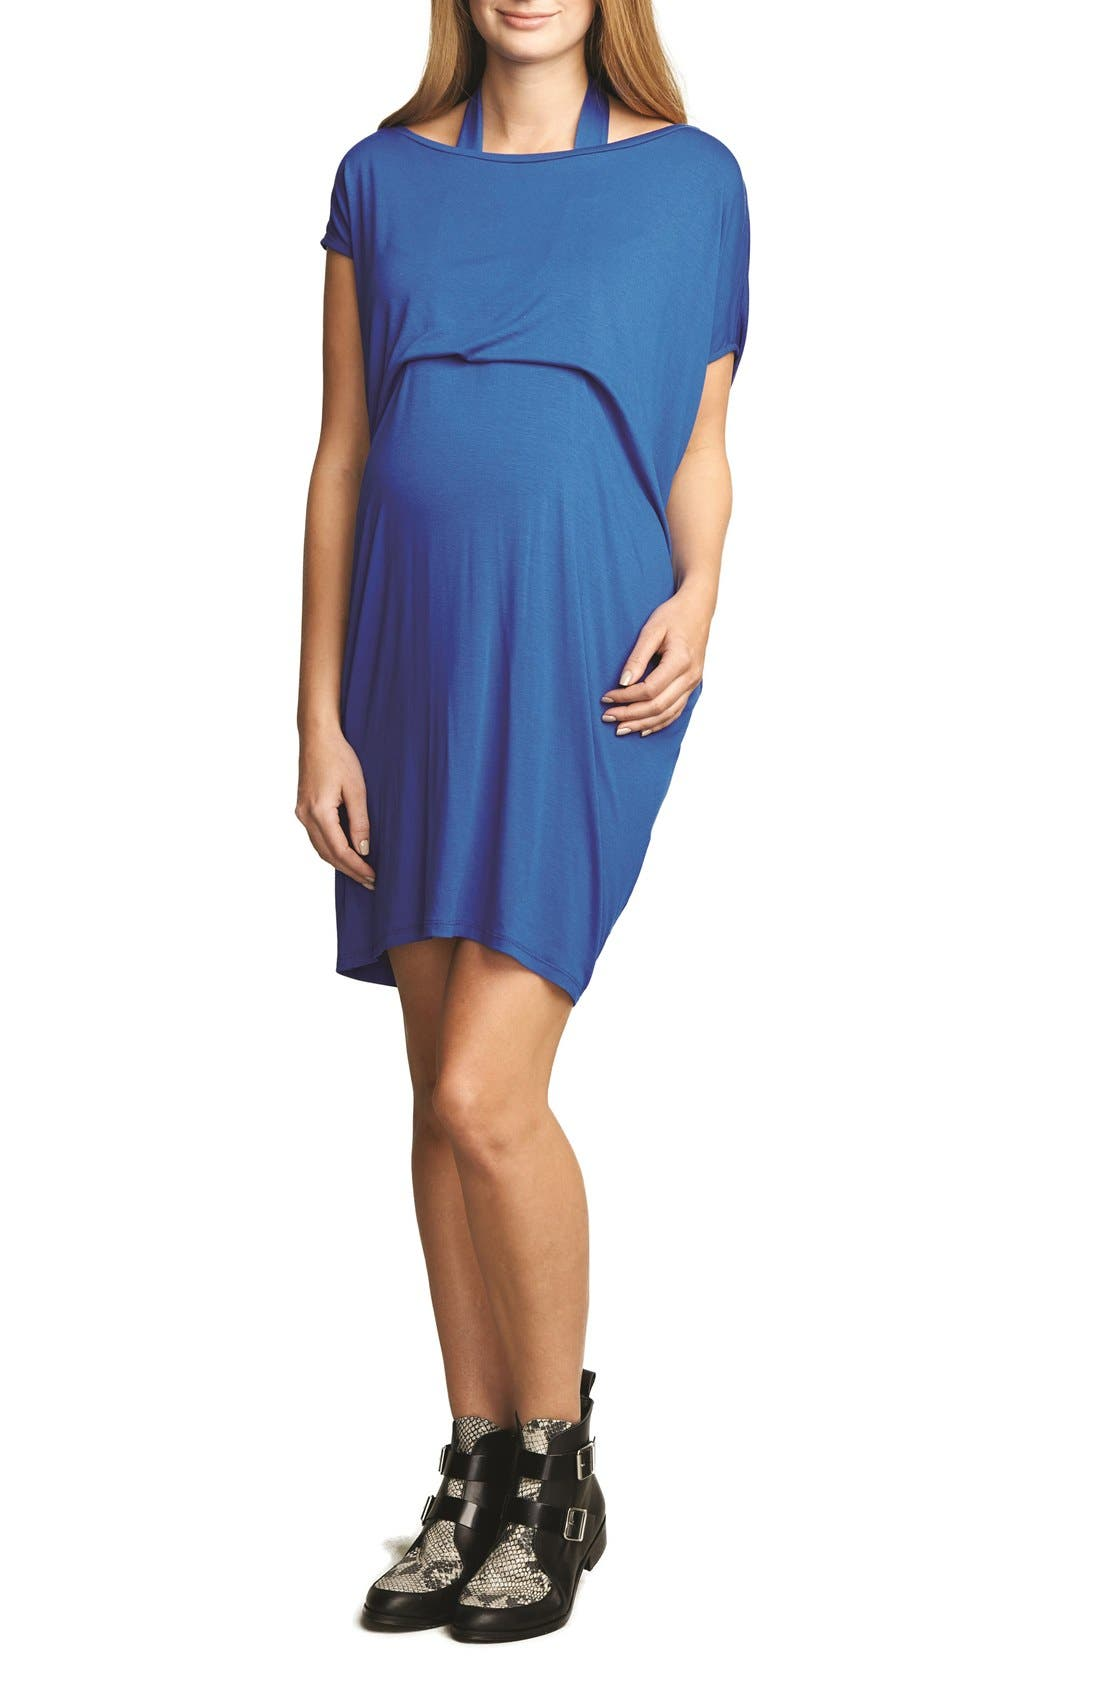 The Urban Ma Halter Maternity Dress